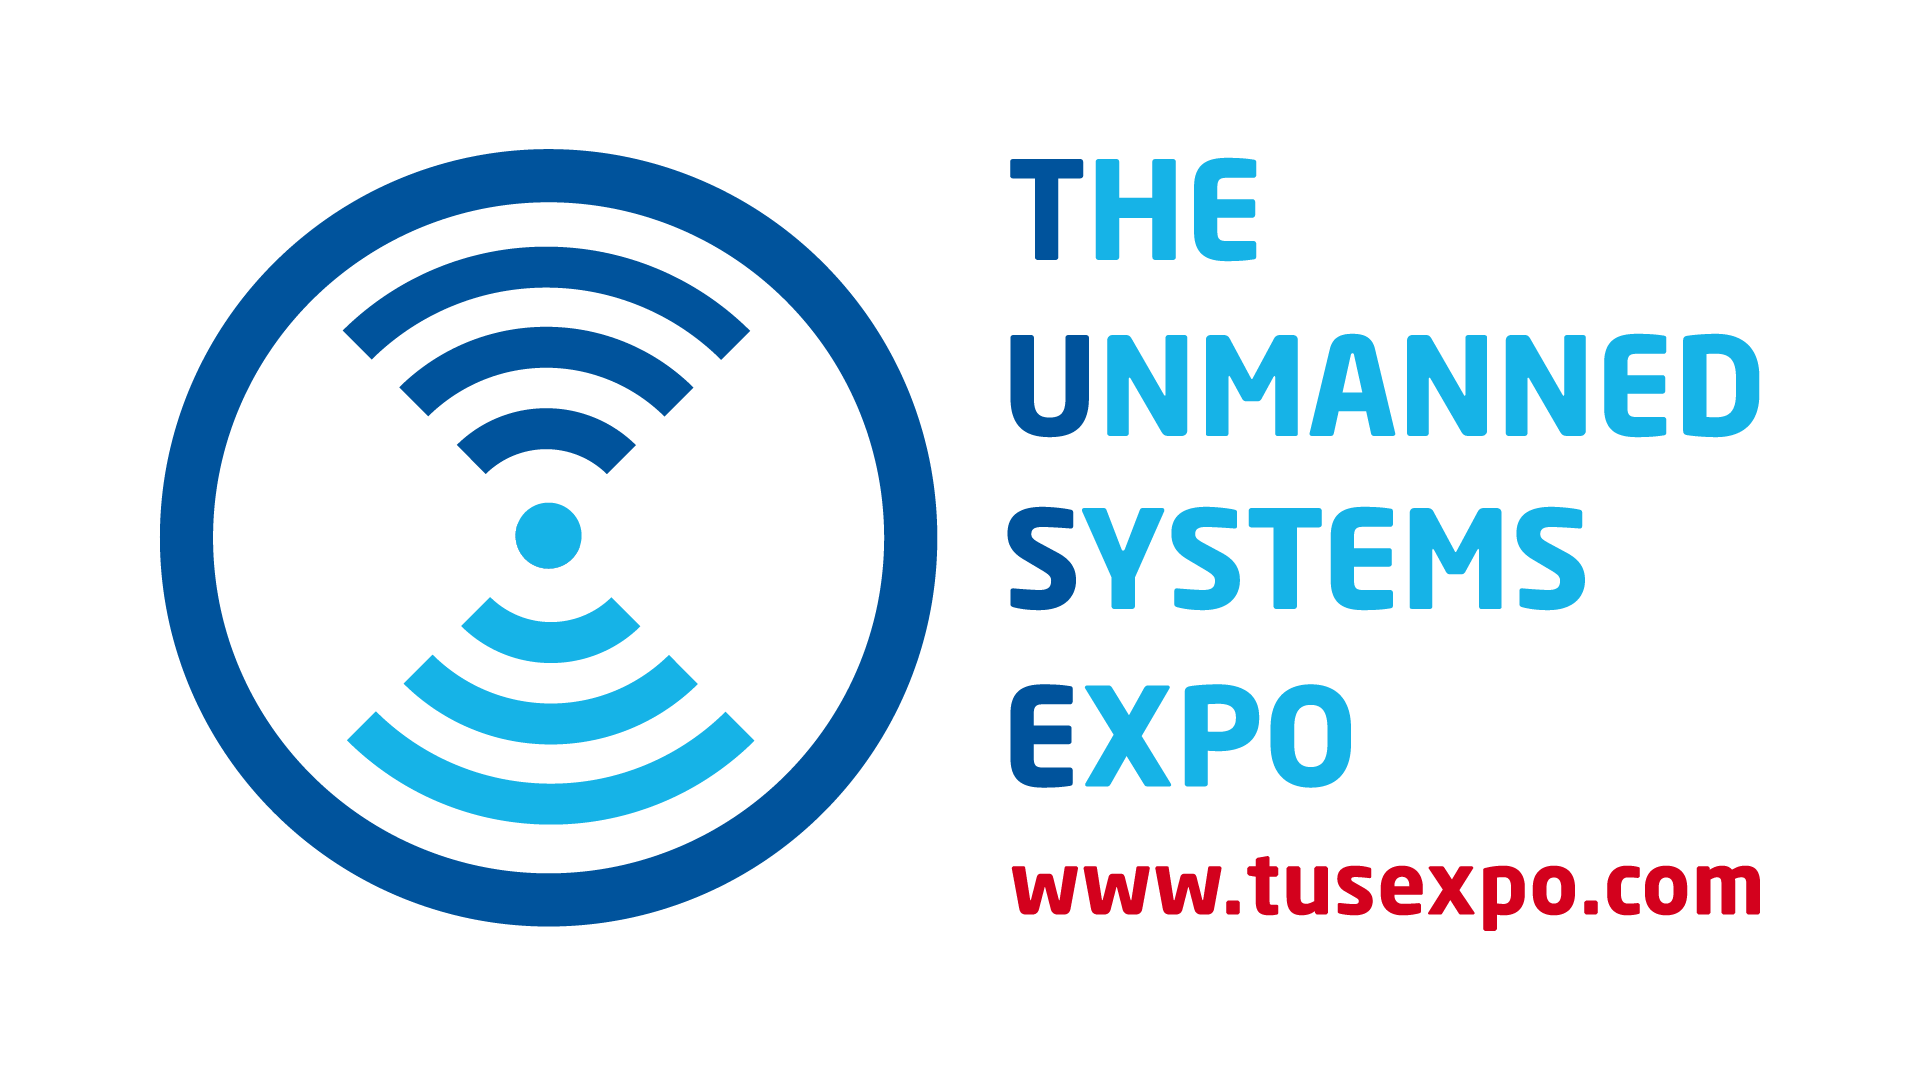 Meet Key players from the Unmanned Systems Industry at TUS Expo Europe 2019